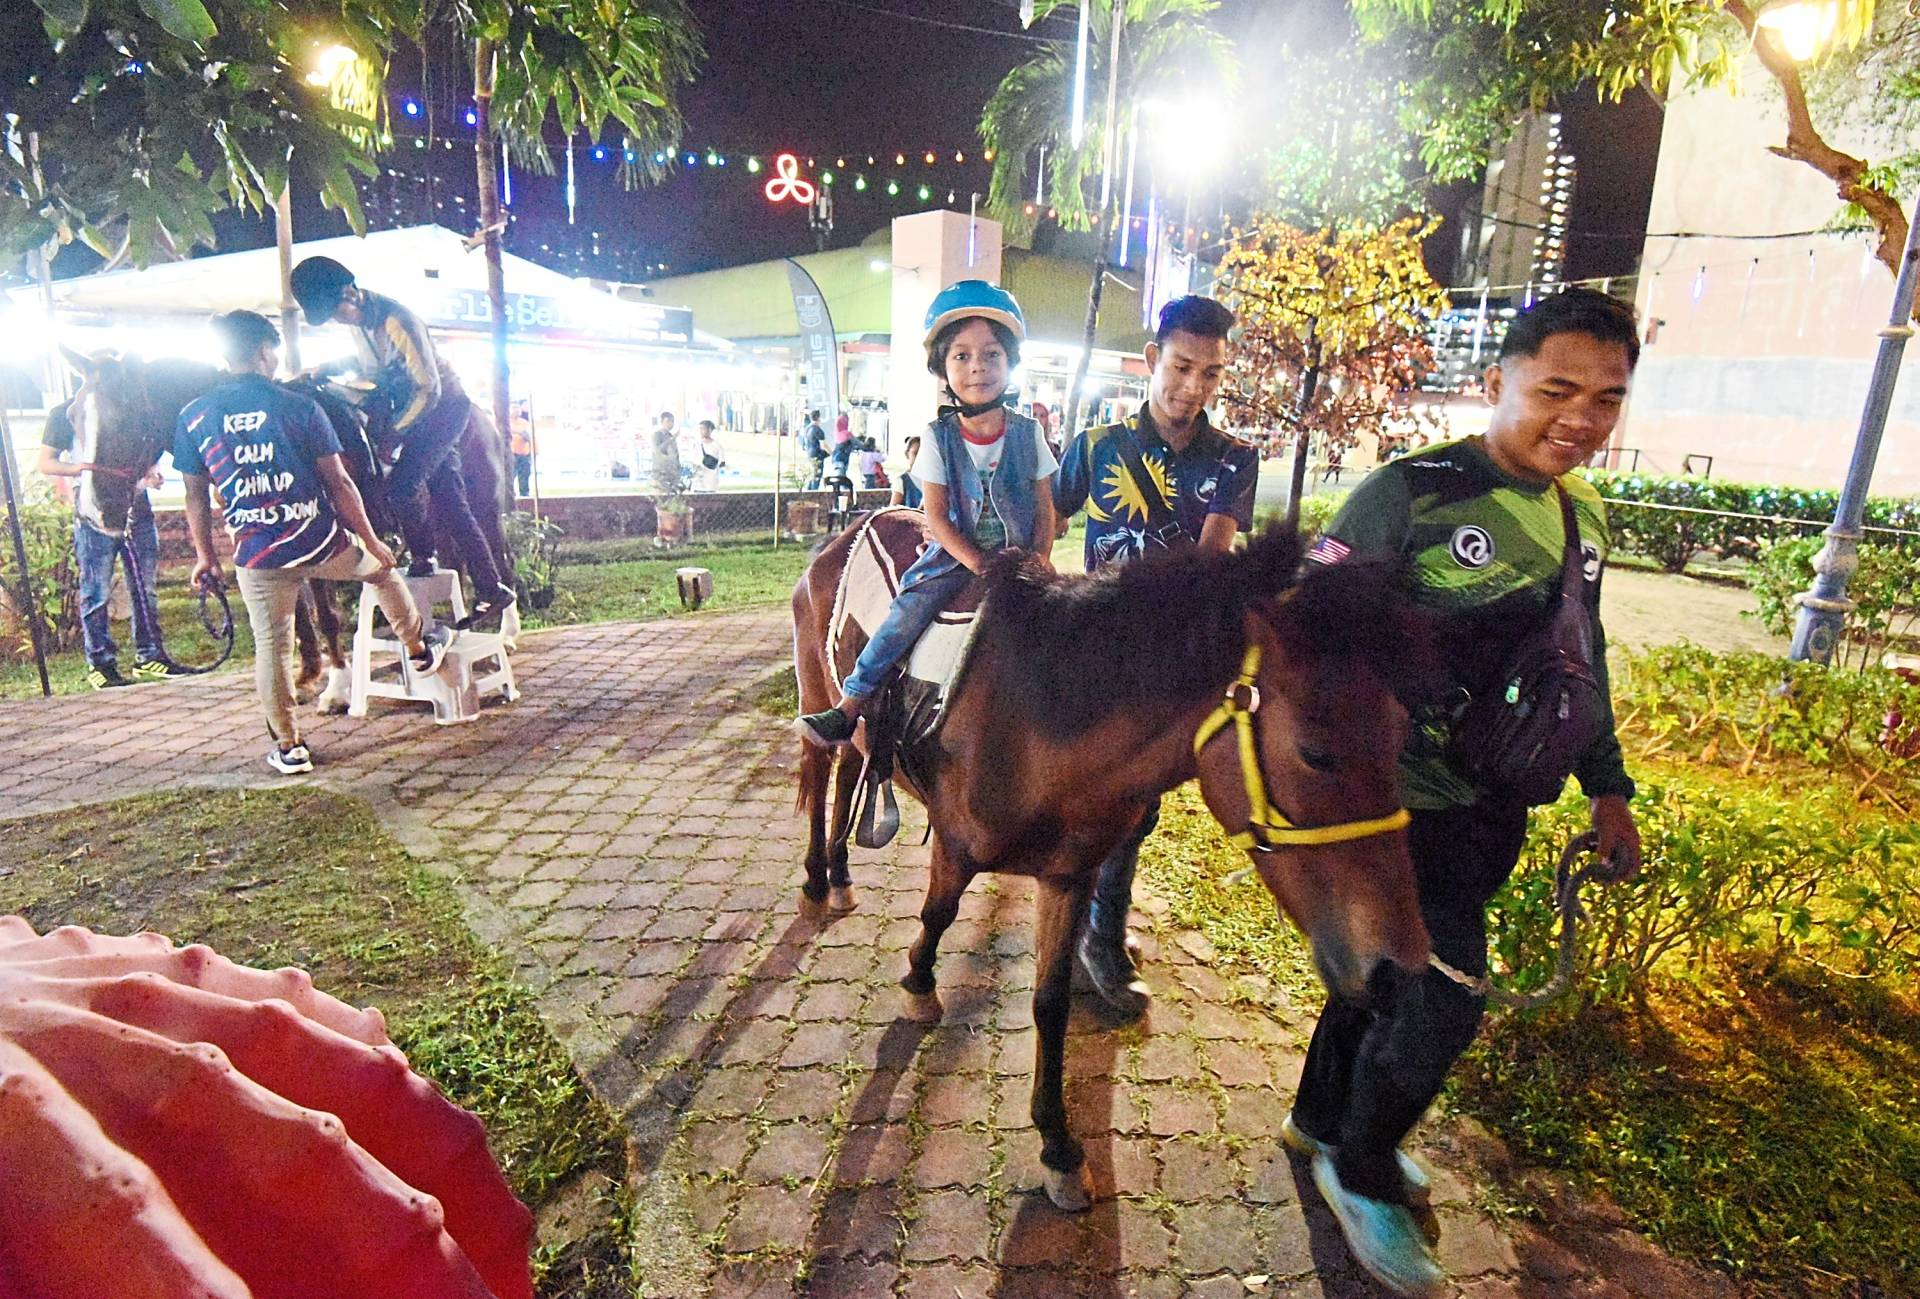 Horse riding is a hit among younger children while the many (above) amusement rides are attracting children and youths.